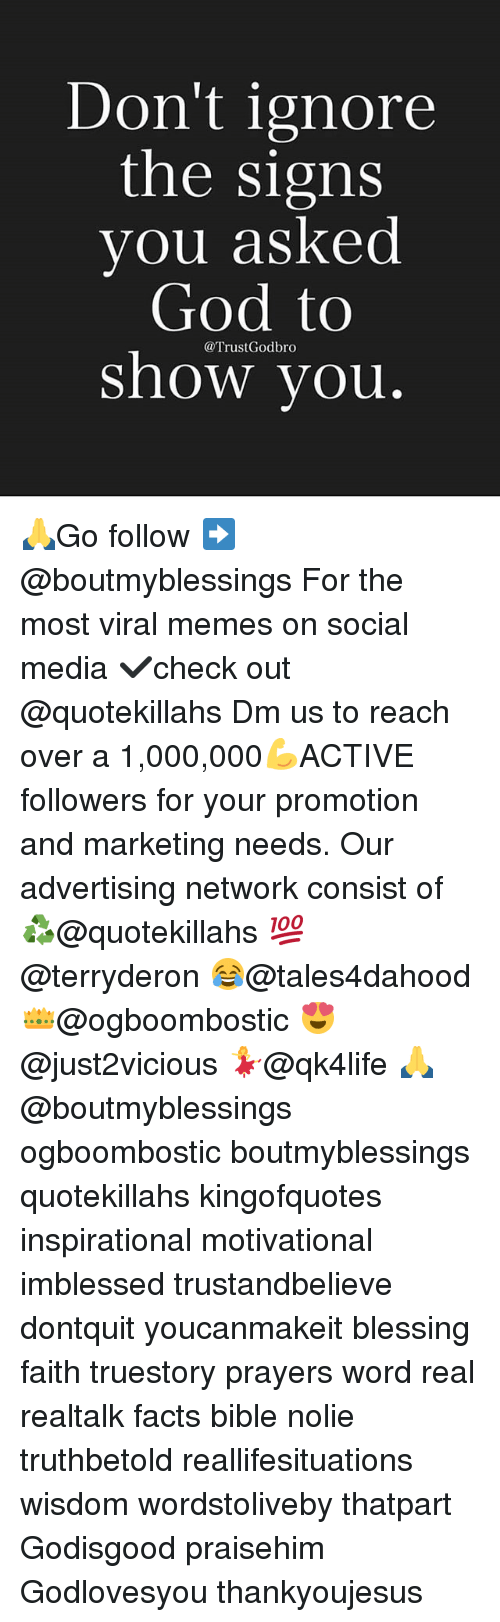 Facts, God, and Memes: Don't ignore  the signs  you asked  God to  @Trust Godbro  show you 🙏Go follow ➡@boutmyblessings For the most viral memes on social media ✔check out @quotekillahs Dm us to reach over a 1,000,000💪ACTIVE followers for your promotion and marketing needs. Our advertising network consist of ♻@quotekillahs 💯@terryderon 😂@tales4dahood 👑@ogboombostic 😍@just2vicious 💃@qk4life 🙏@boutmyblessings ogboombostic boutmyblessings quotekillahs kingofquotes inspirational motivational imblessed trustandbelieve dontquit youcanmakeit blessing faith truestory prayers word real realtalk facts bible nolie truthbetold reallifesituations wisdom wordstoliveby thatpart Godisgood praisehim Godlovesyou thankyoujesus